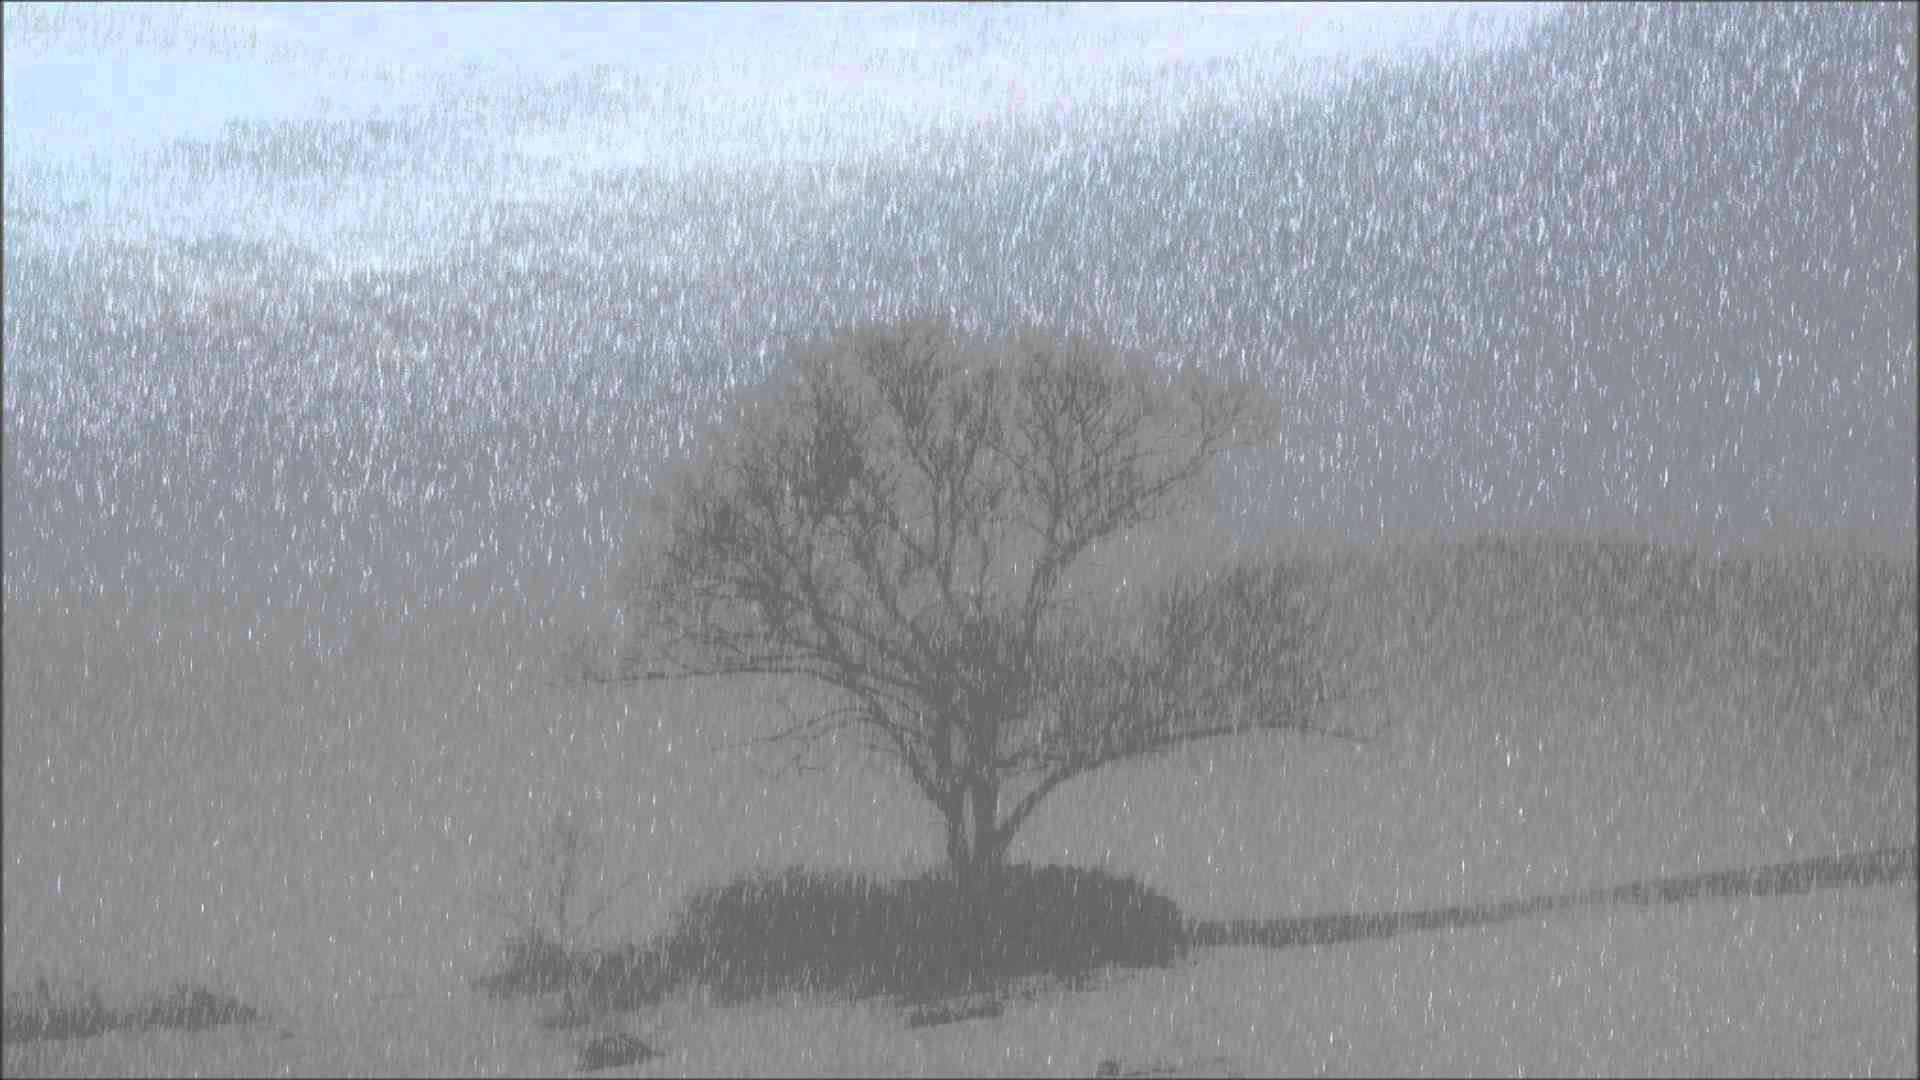 【自然音】雨強め3時間/Heavy rain 3 hours/Nature sound Healing chill out - YouTube